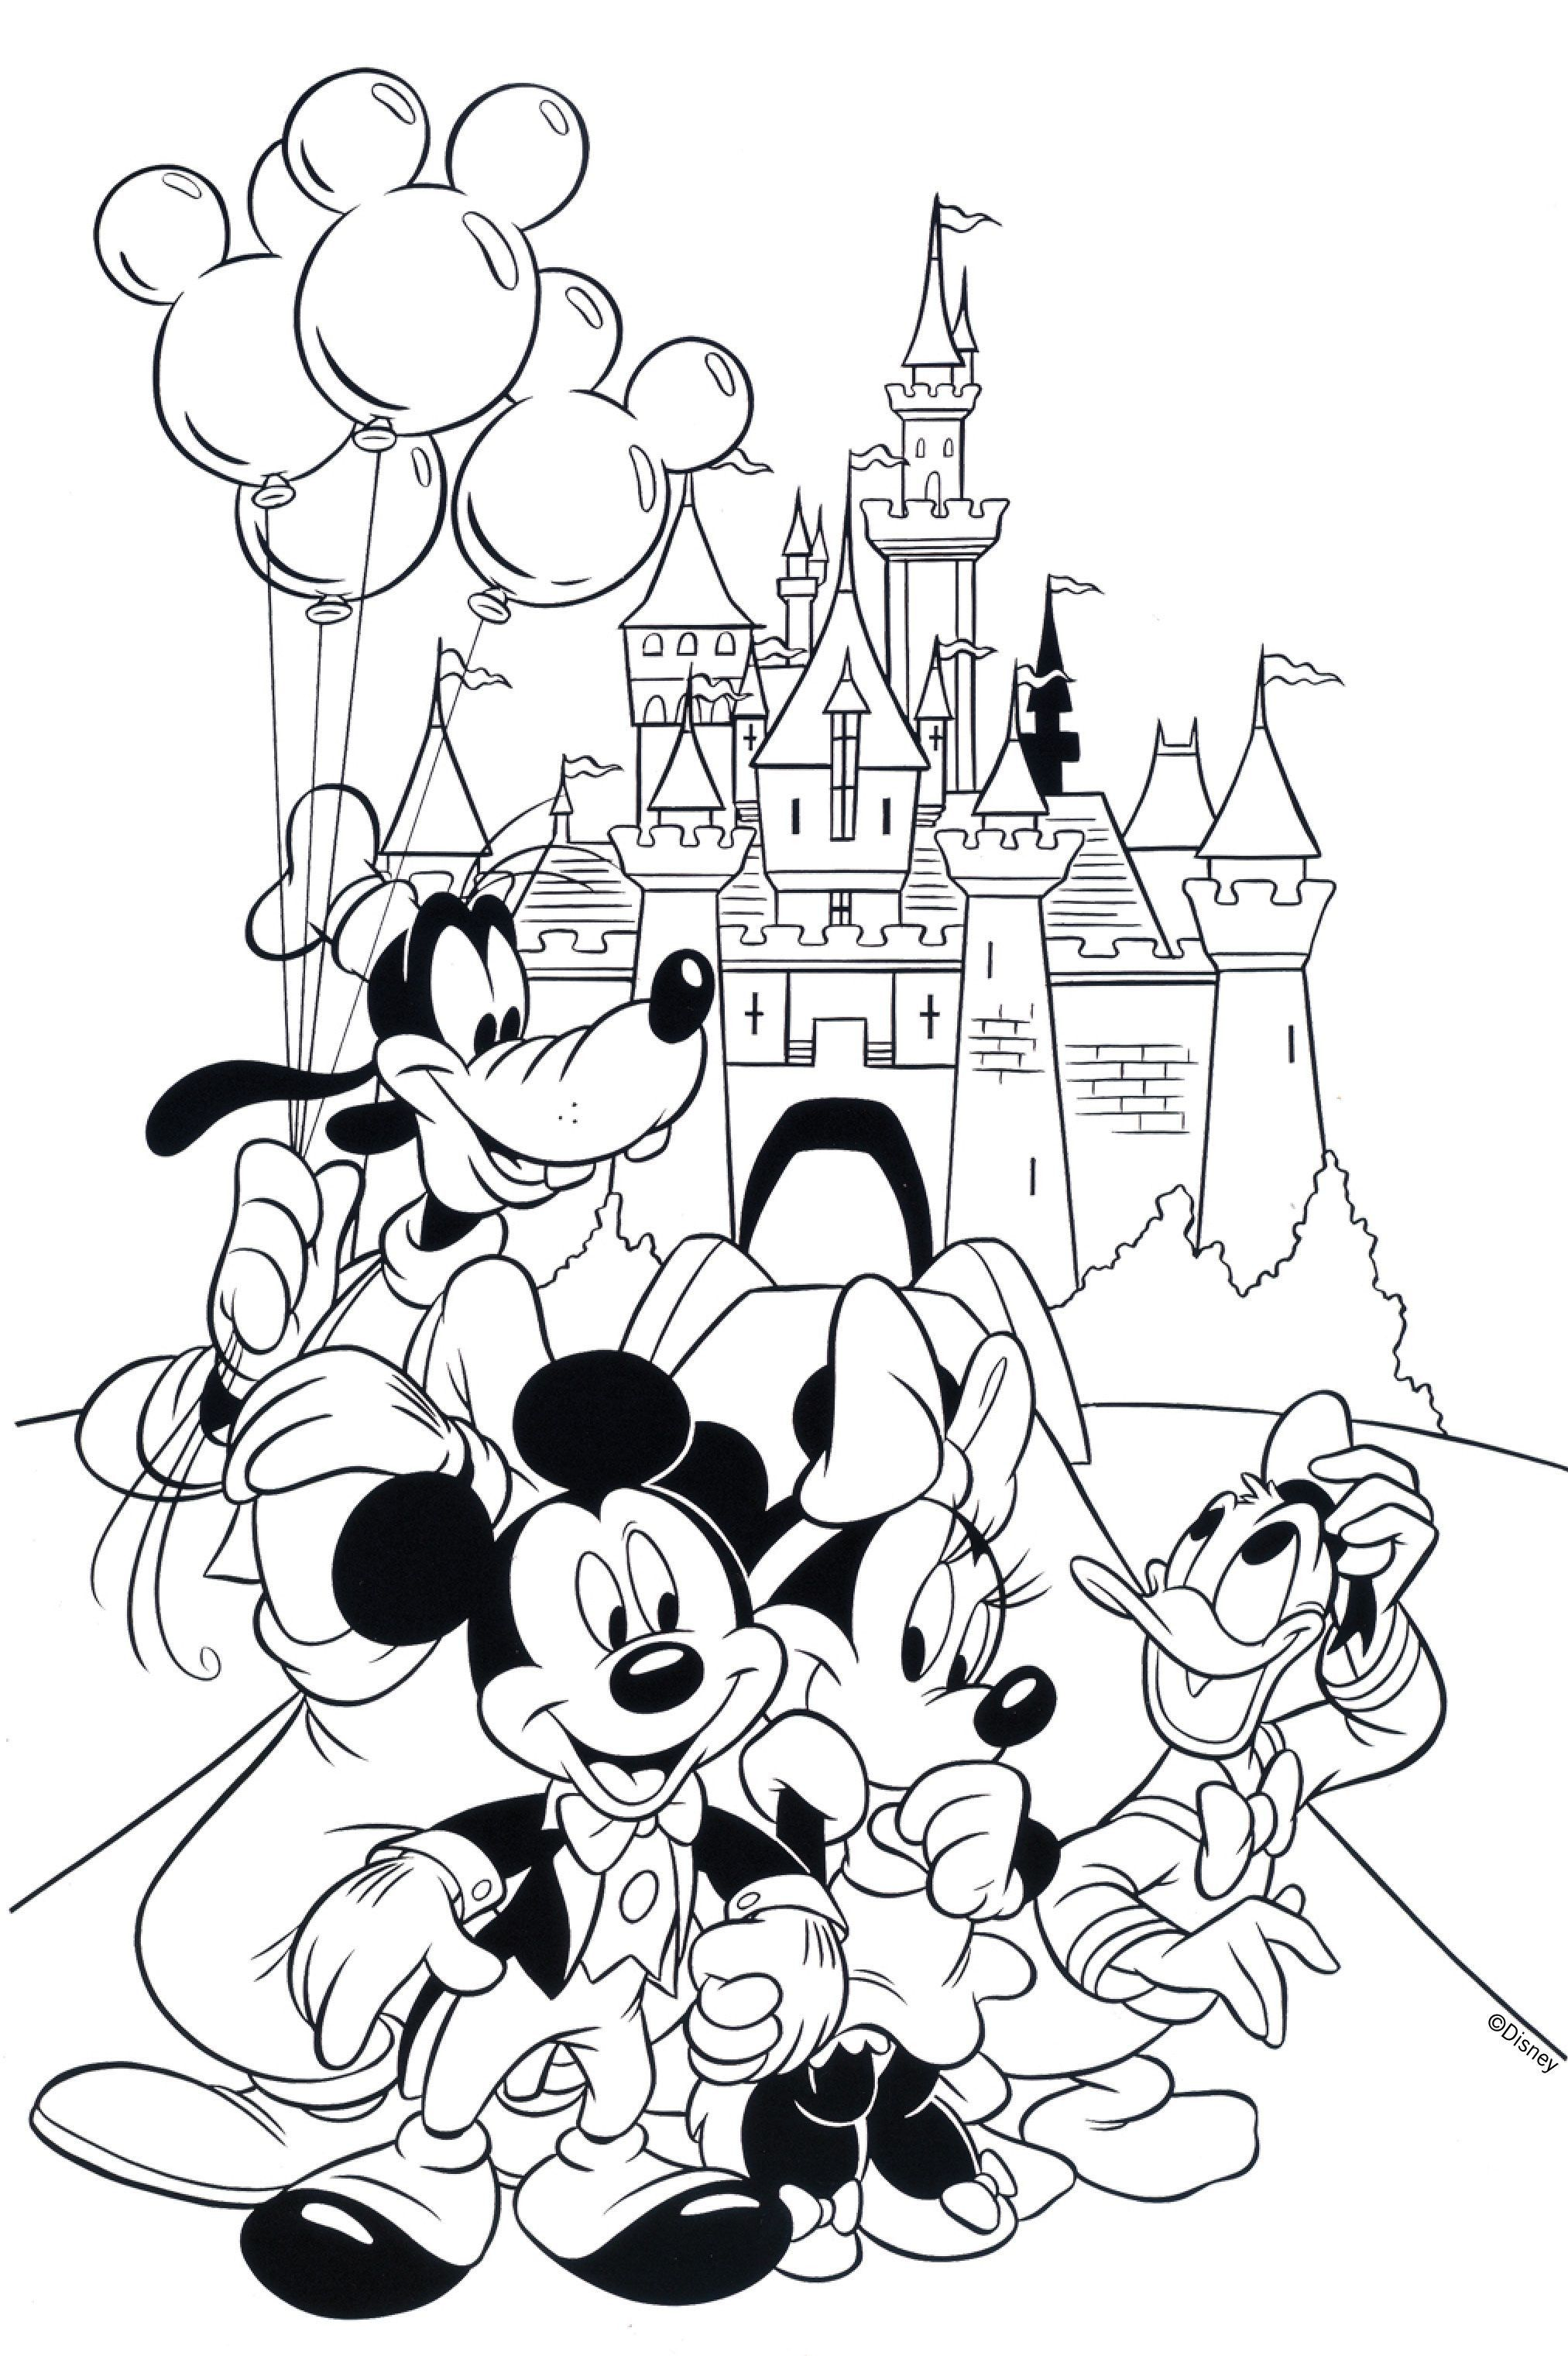 Free Disney Coloring Pages | OMALOVÁNKY / COLORING BOOK ...